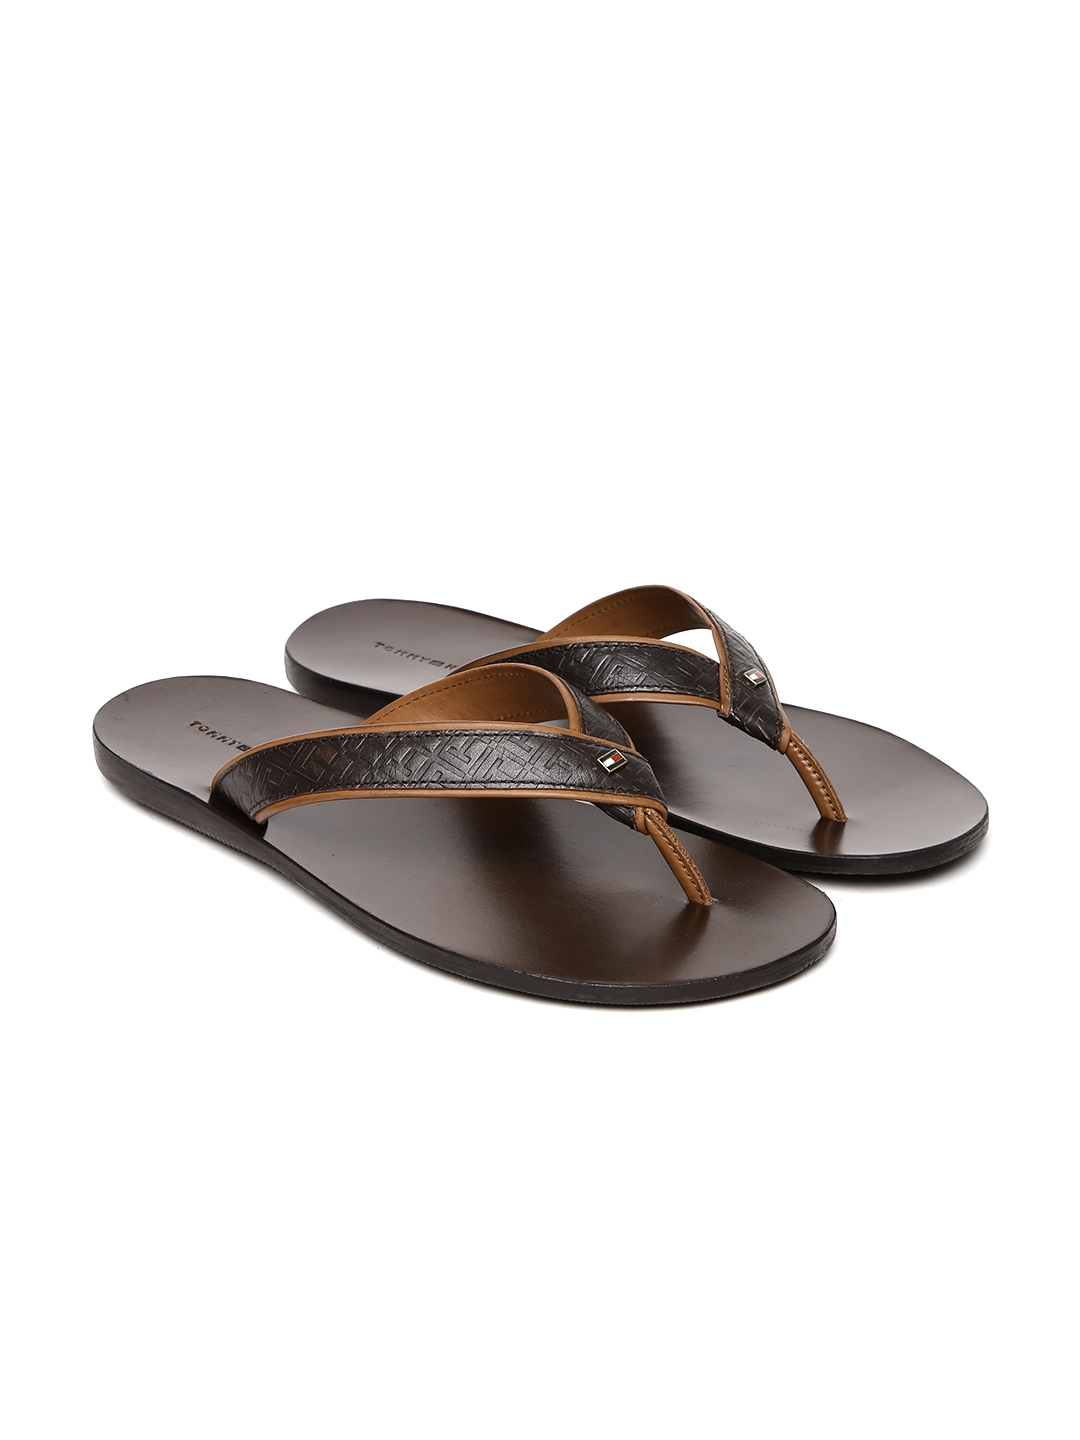 3acc7a277d1 Buy Tommy Hilfiger Men Brown Textured Leather Sandals - Sandals for ...